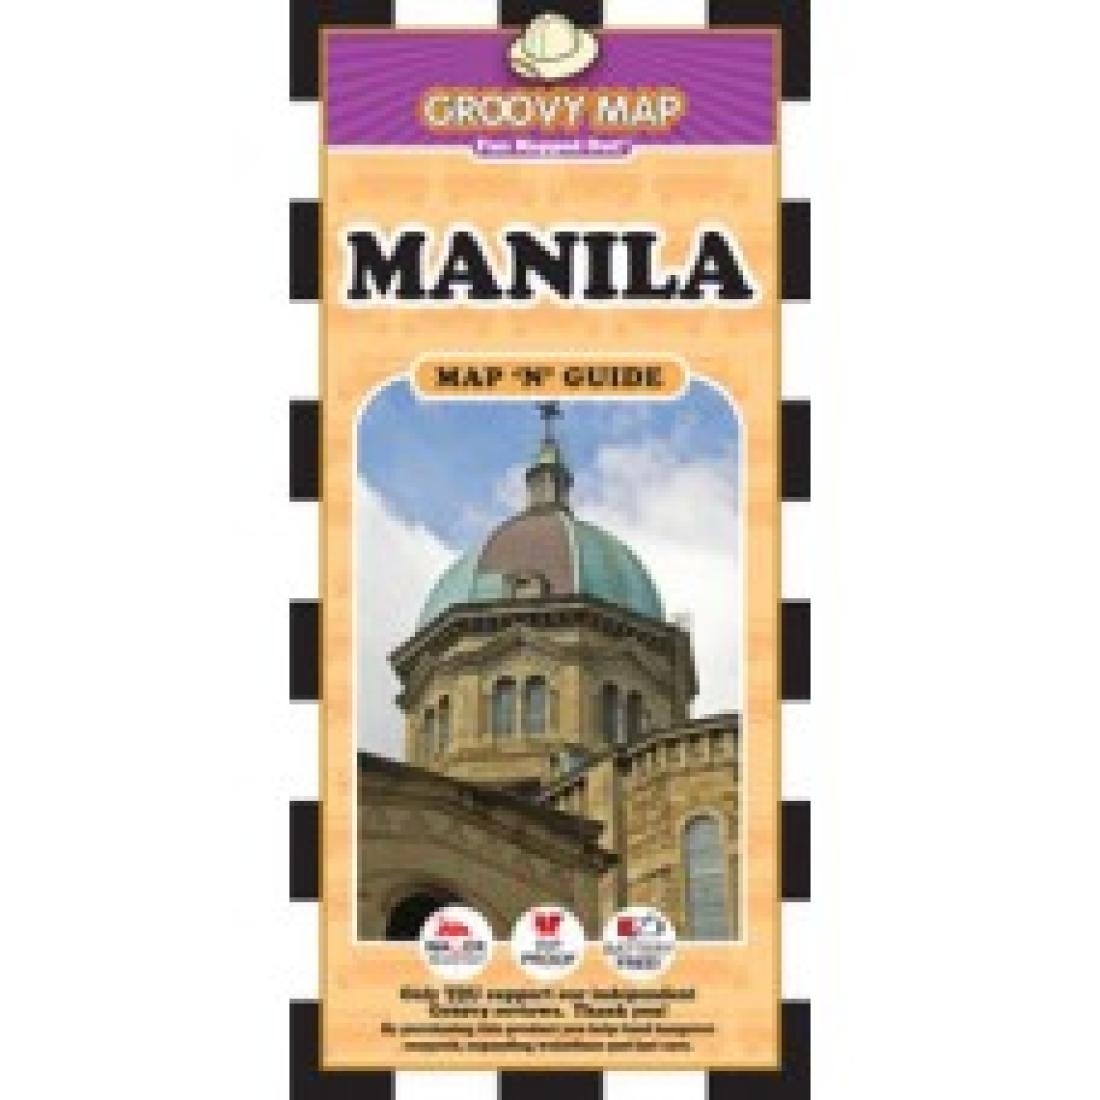 philippines map 'n' guide by groovy map co - manila philippines map 'n' guide by groovy map co